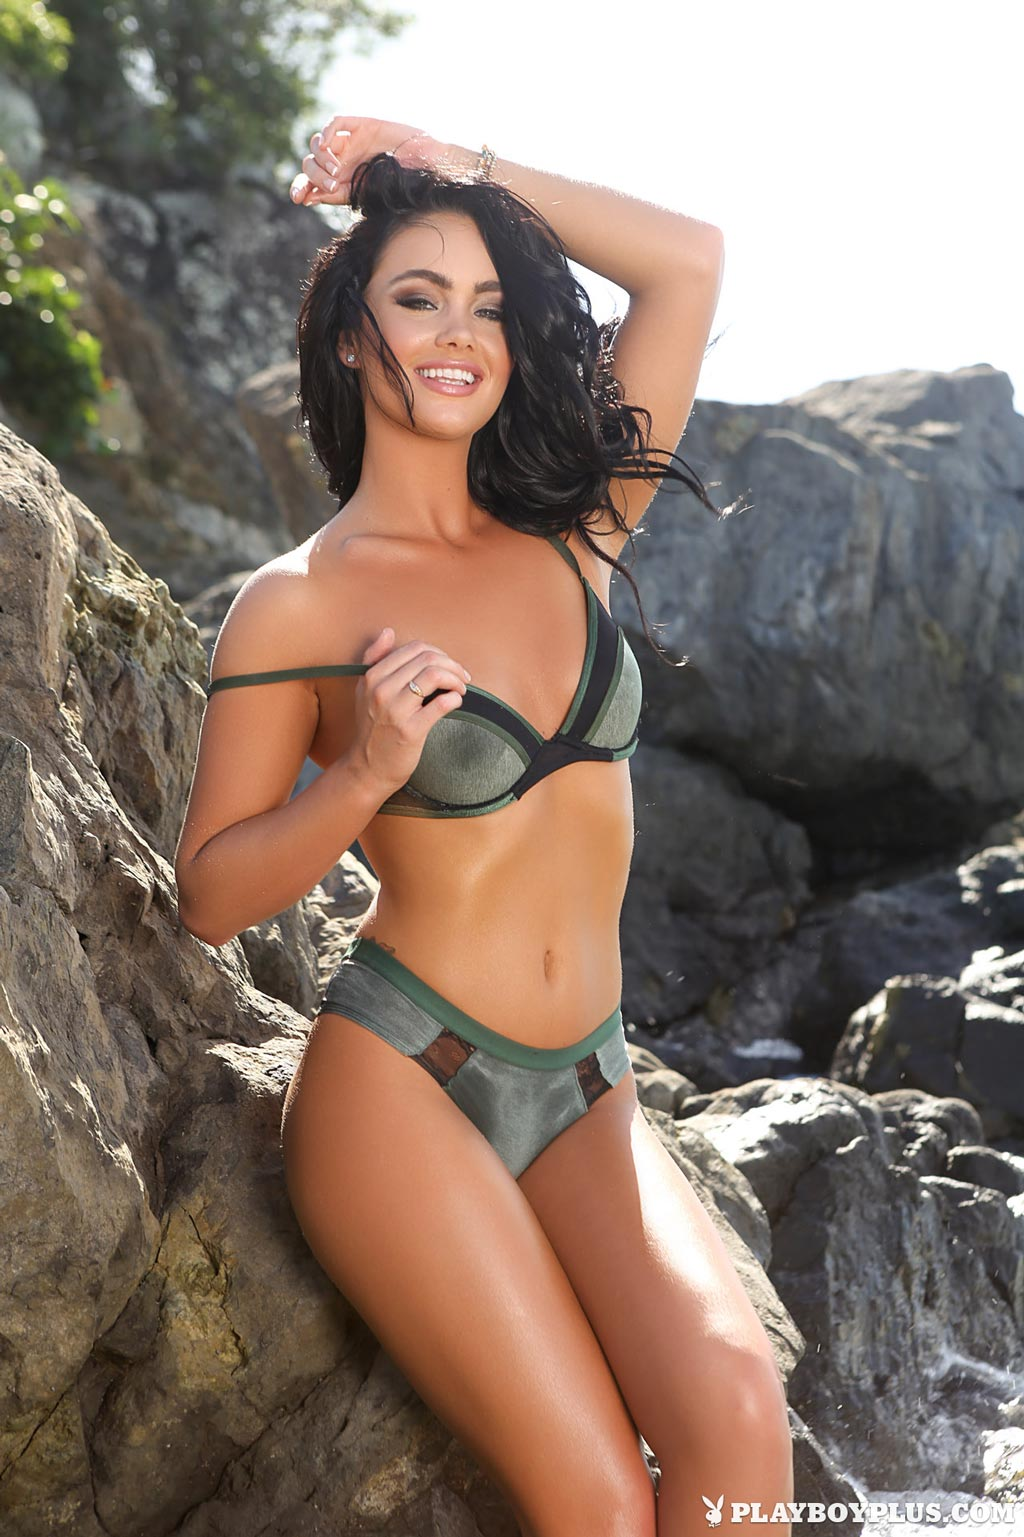 Cybergirl Kristie Taylor in Hot Coast - Centerfolds Blog